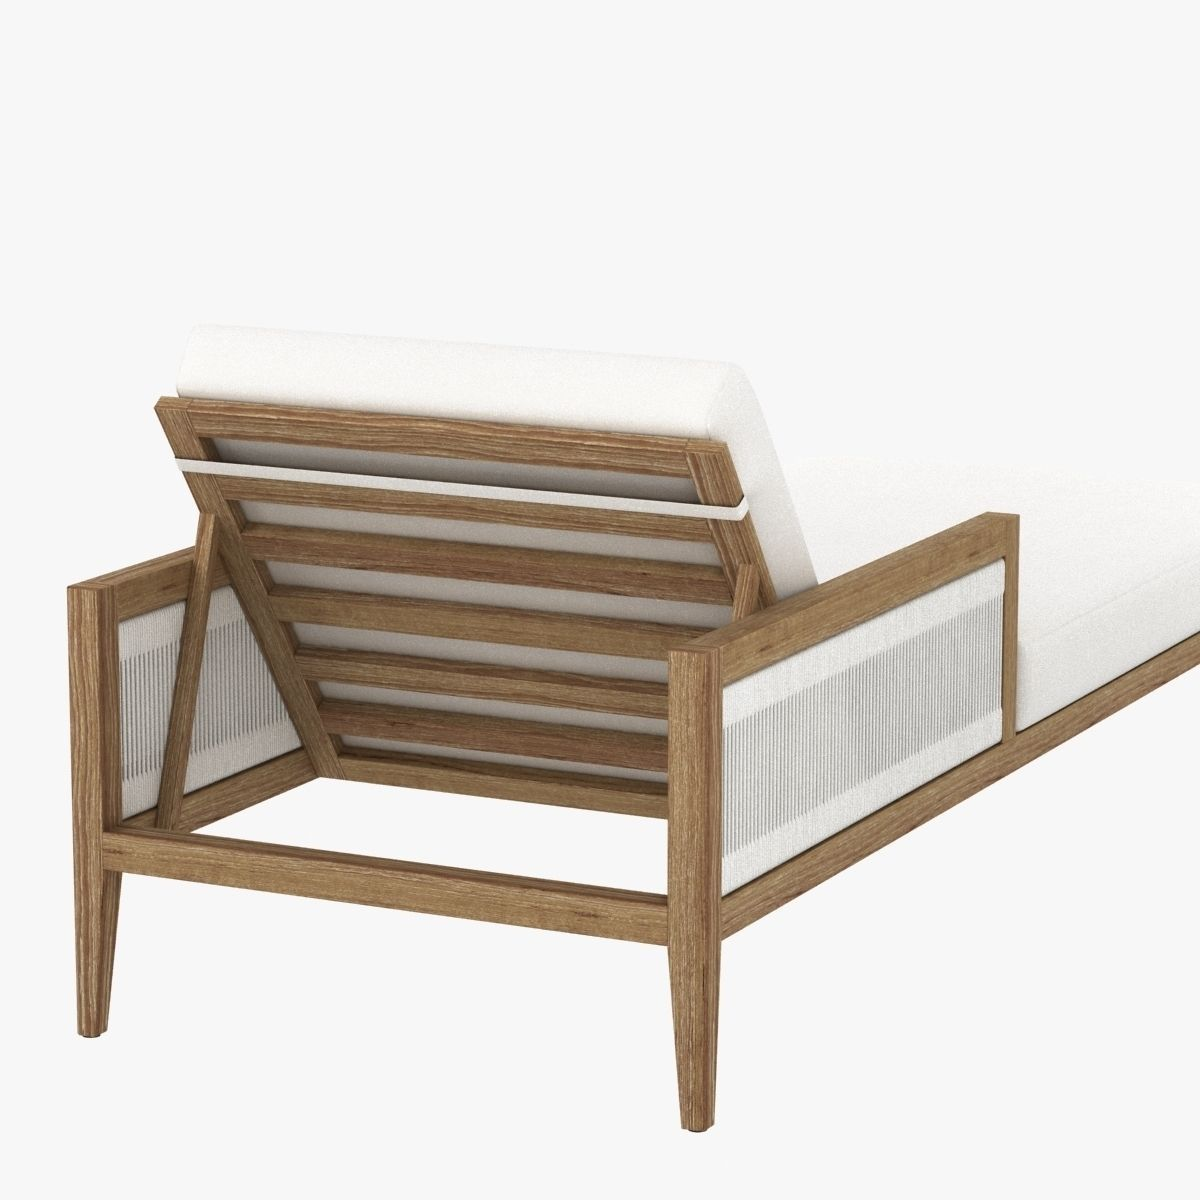 Brizo chaise lounge with cushions by porta forma 3d model for Chaise modele